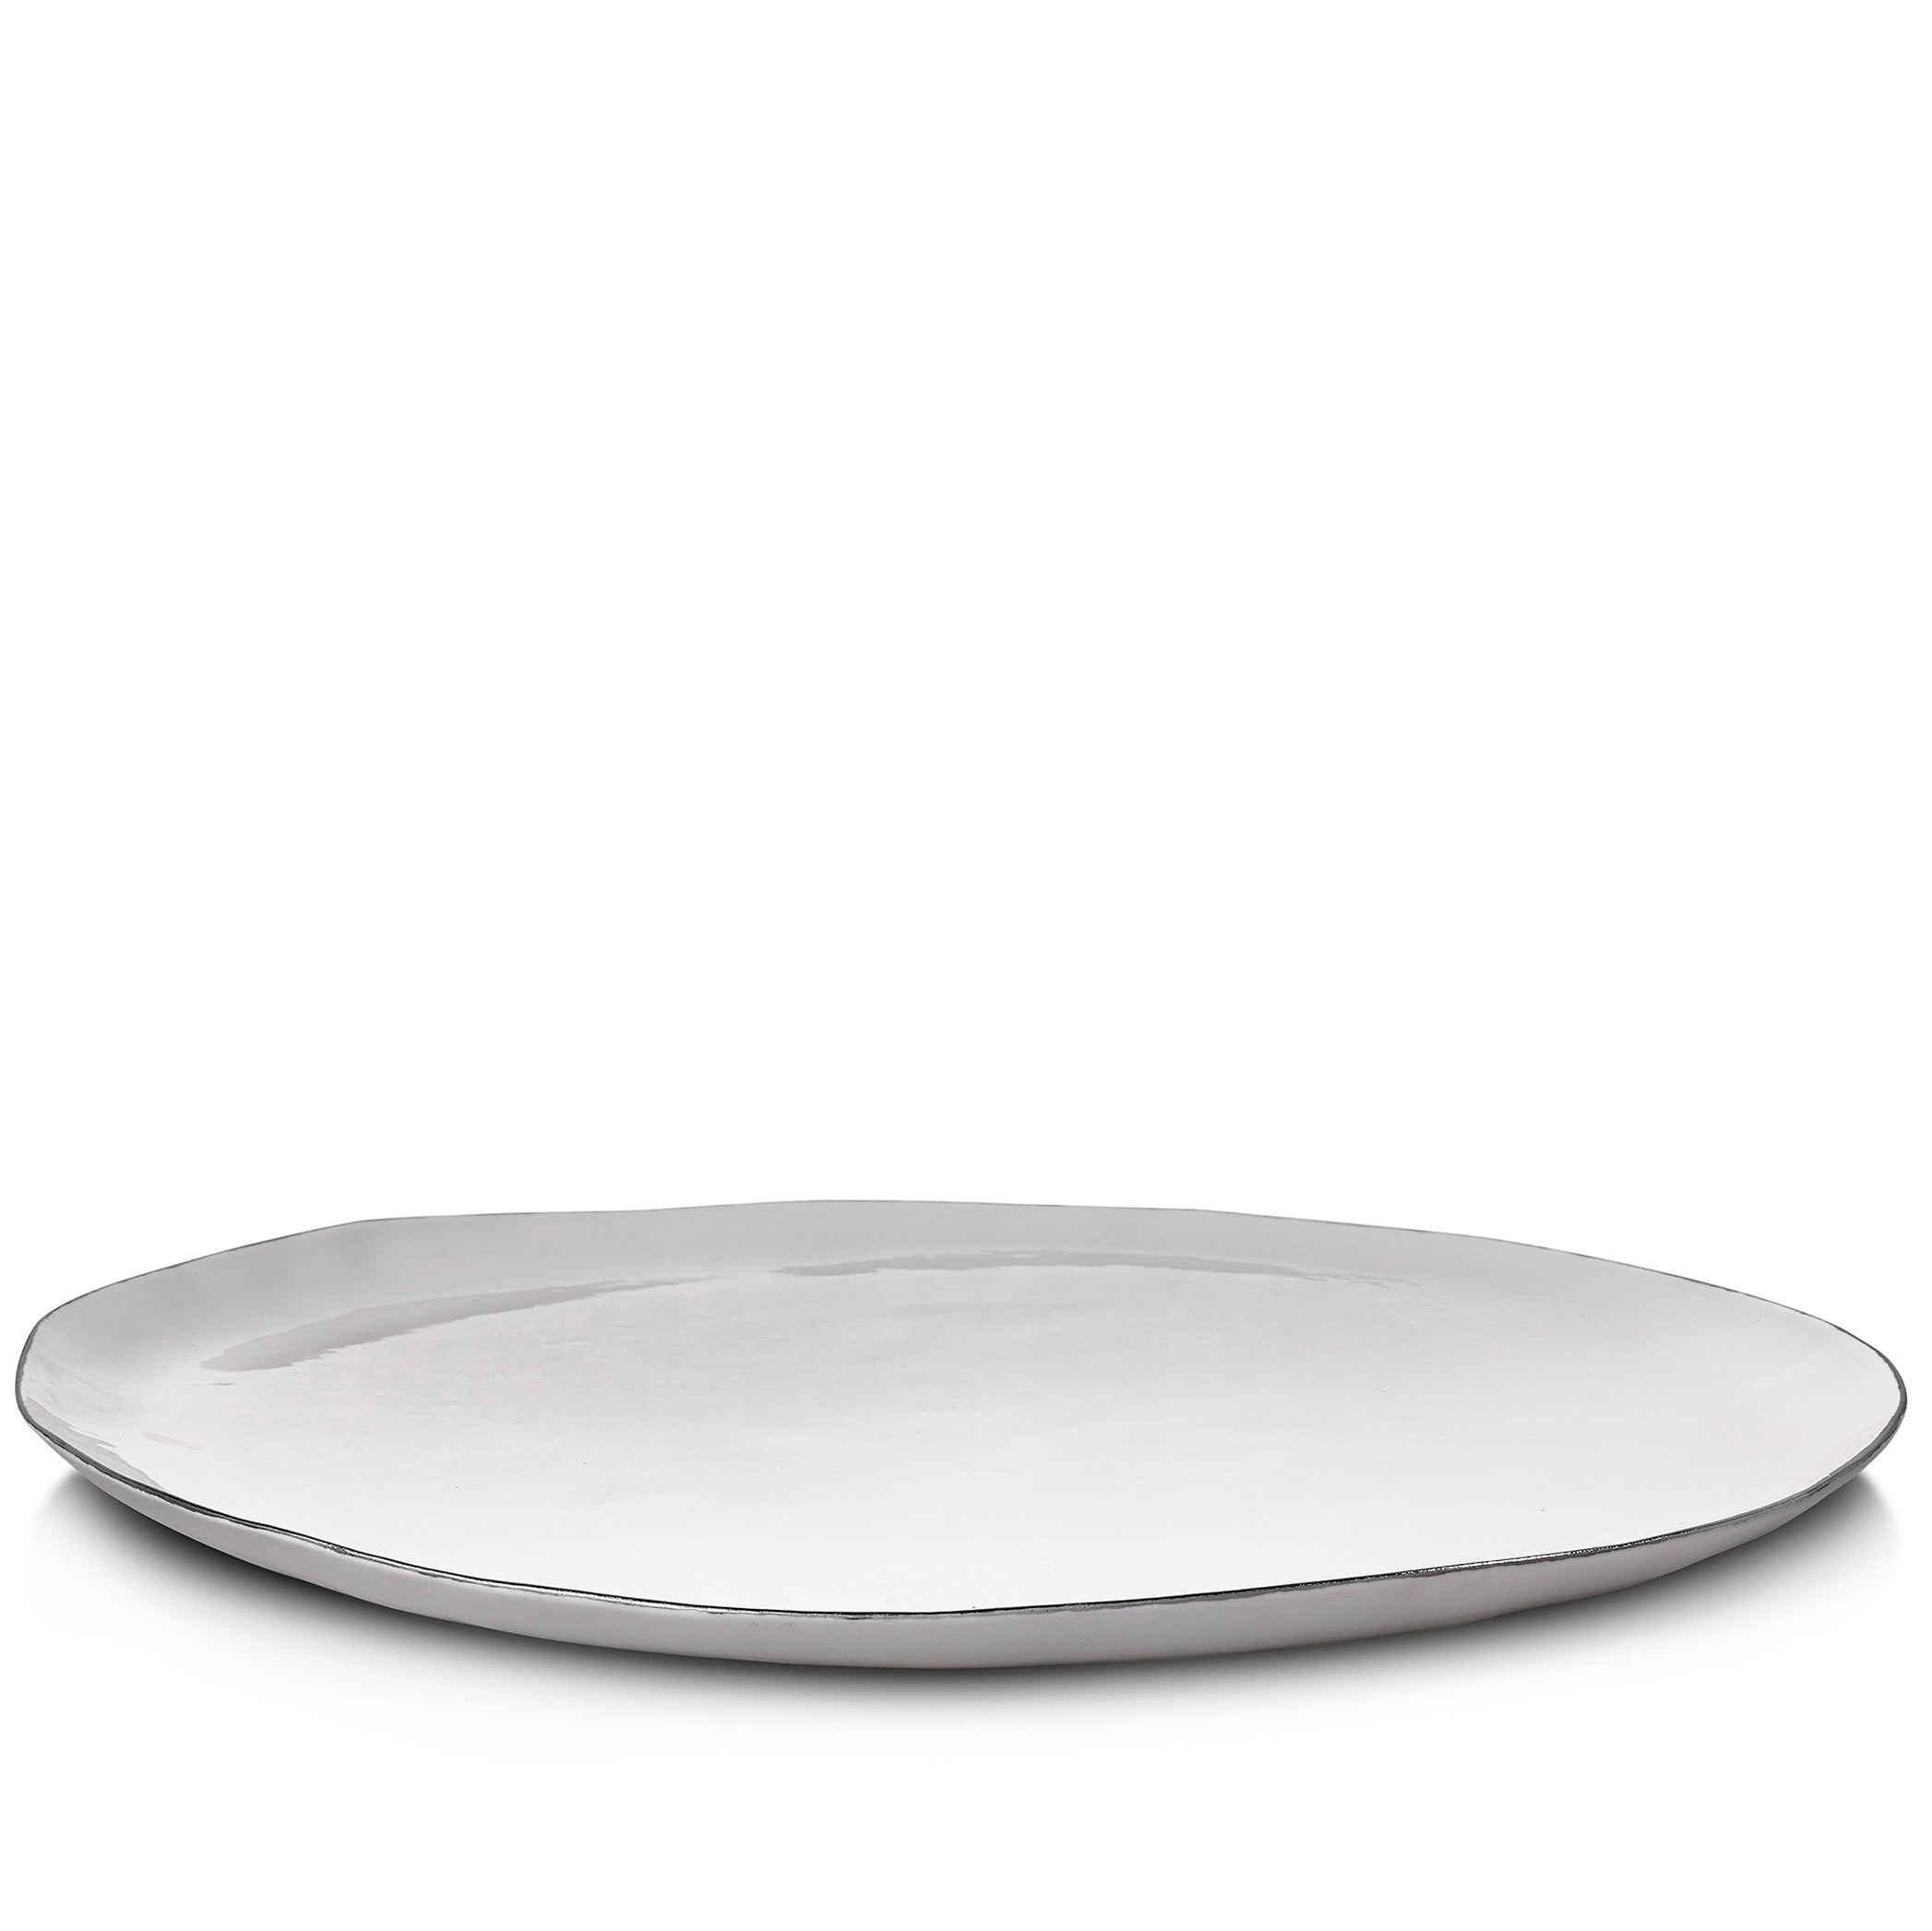 S&B Handmade 46cm Porcelain Extra Large Platter with Silver Rim